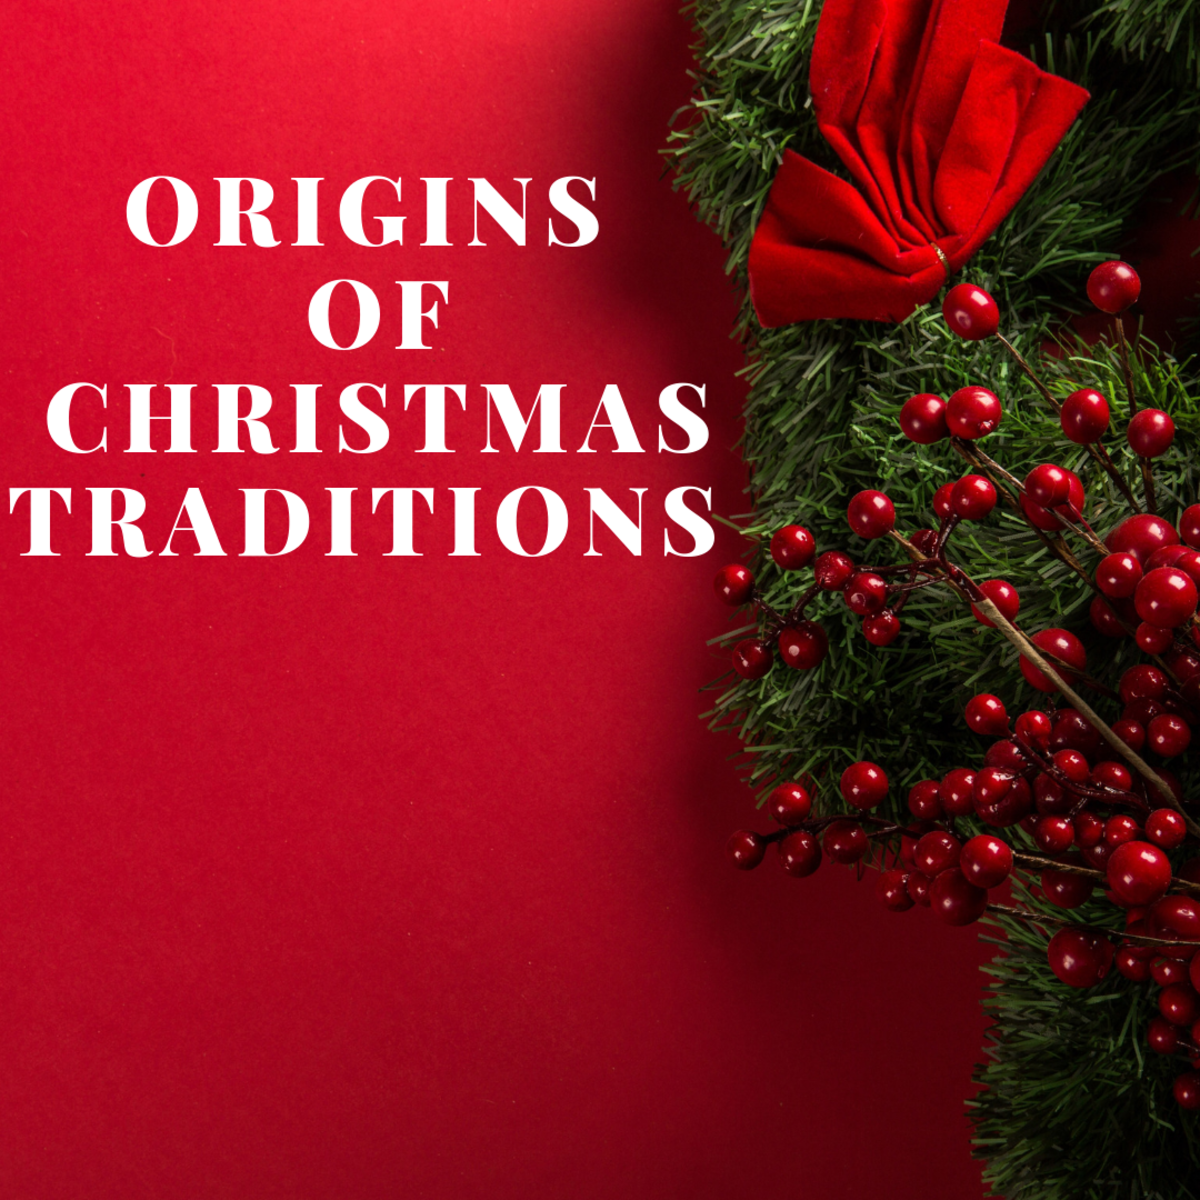 Many Christmas traditions don't come from where you might think. Read on to learn more!